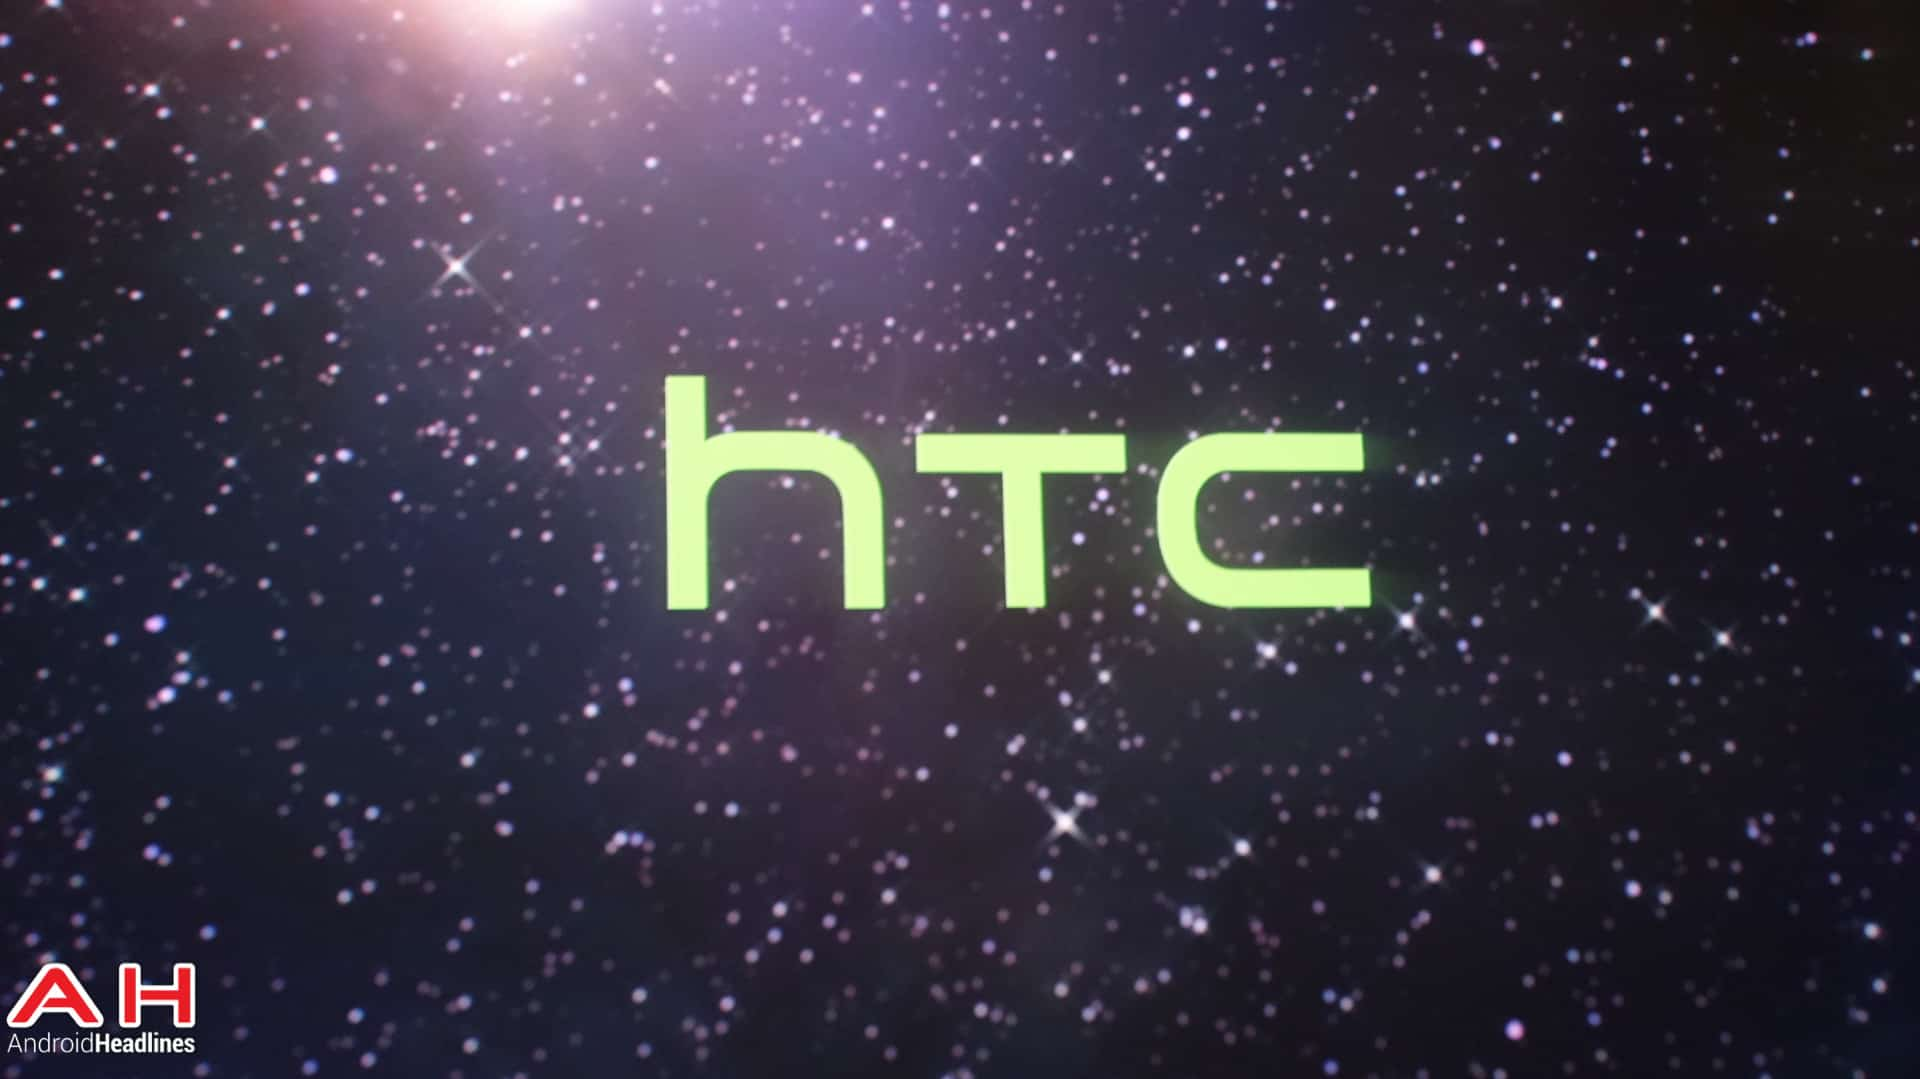 Htc Have Not Had An Enjoyable Year The Business Was One Of The First  Supporters Of The Android Operating System And The First Htc Desire Handset  Was At The